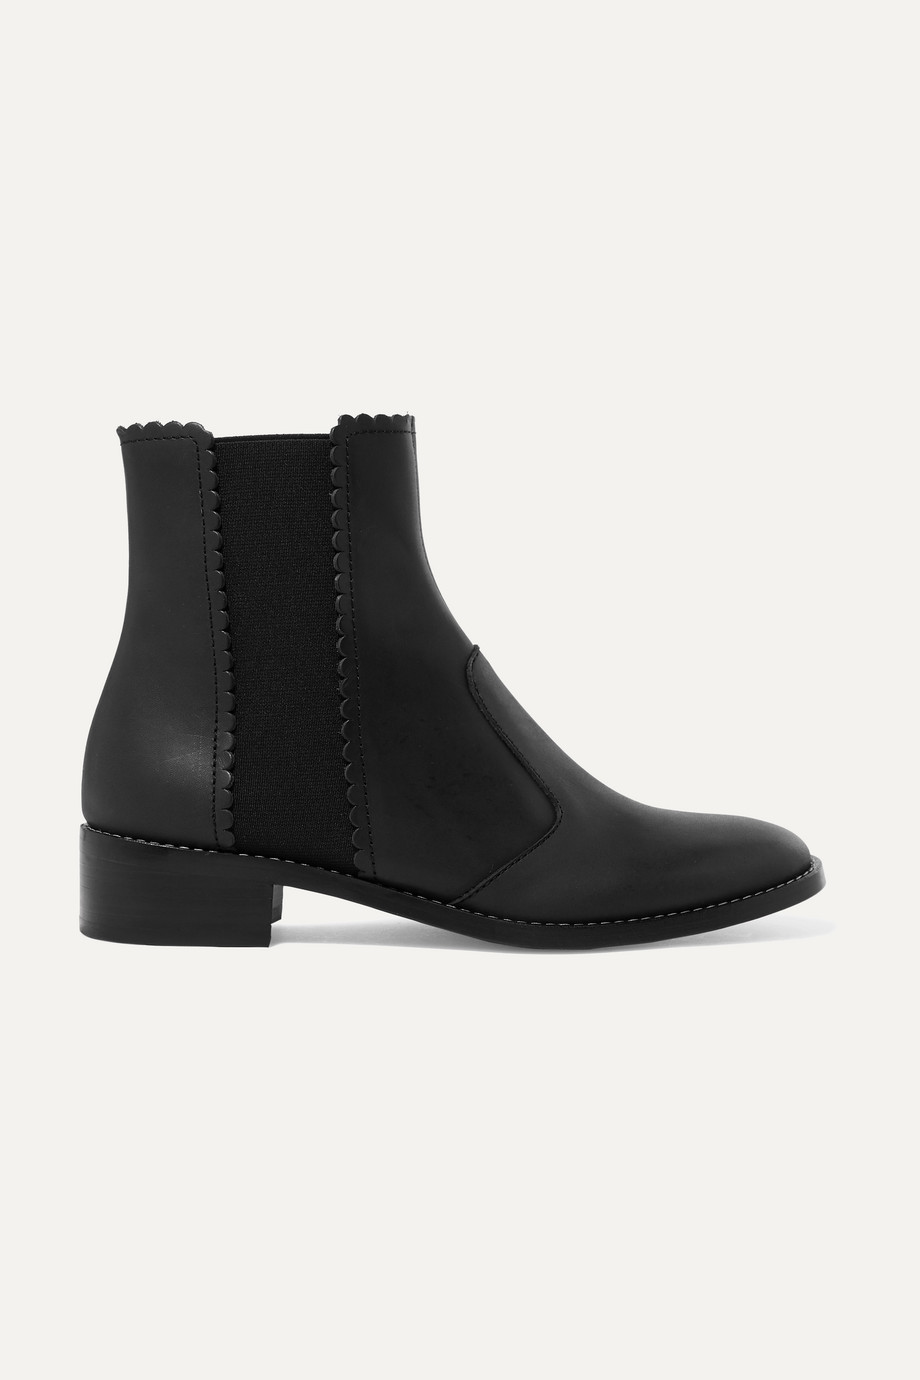 See By Chloé Scalloped leather Chelsea boots